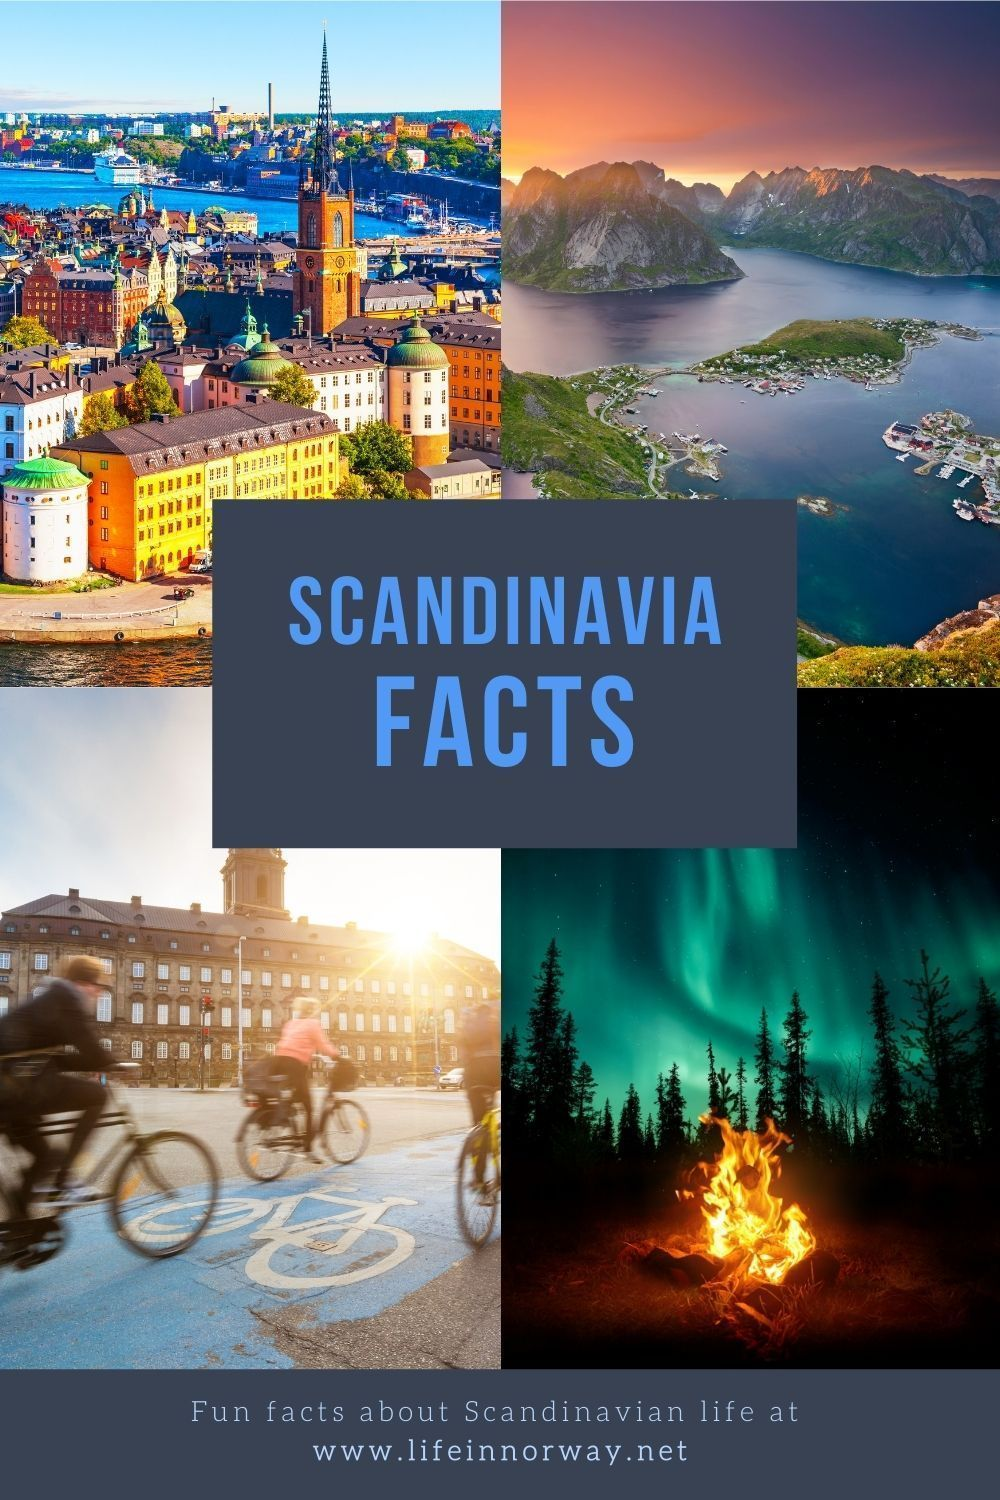 15 Fun Facts About Scandinavia In 2020 Scandinavia Fun Facts Travel Inspiration